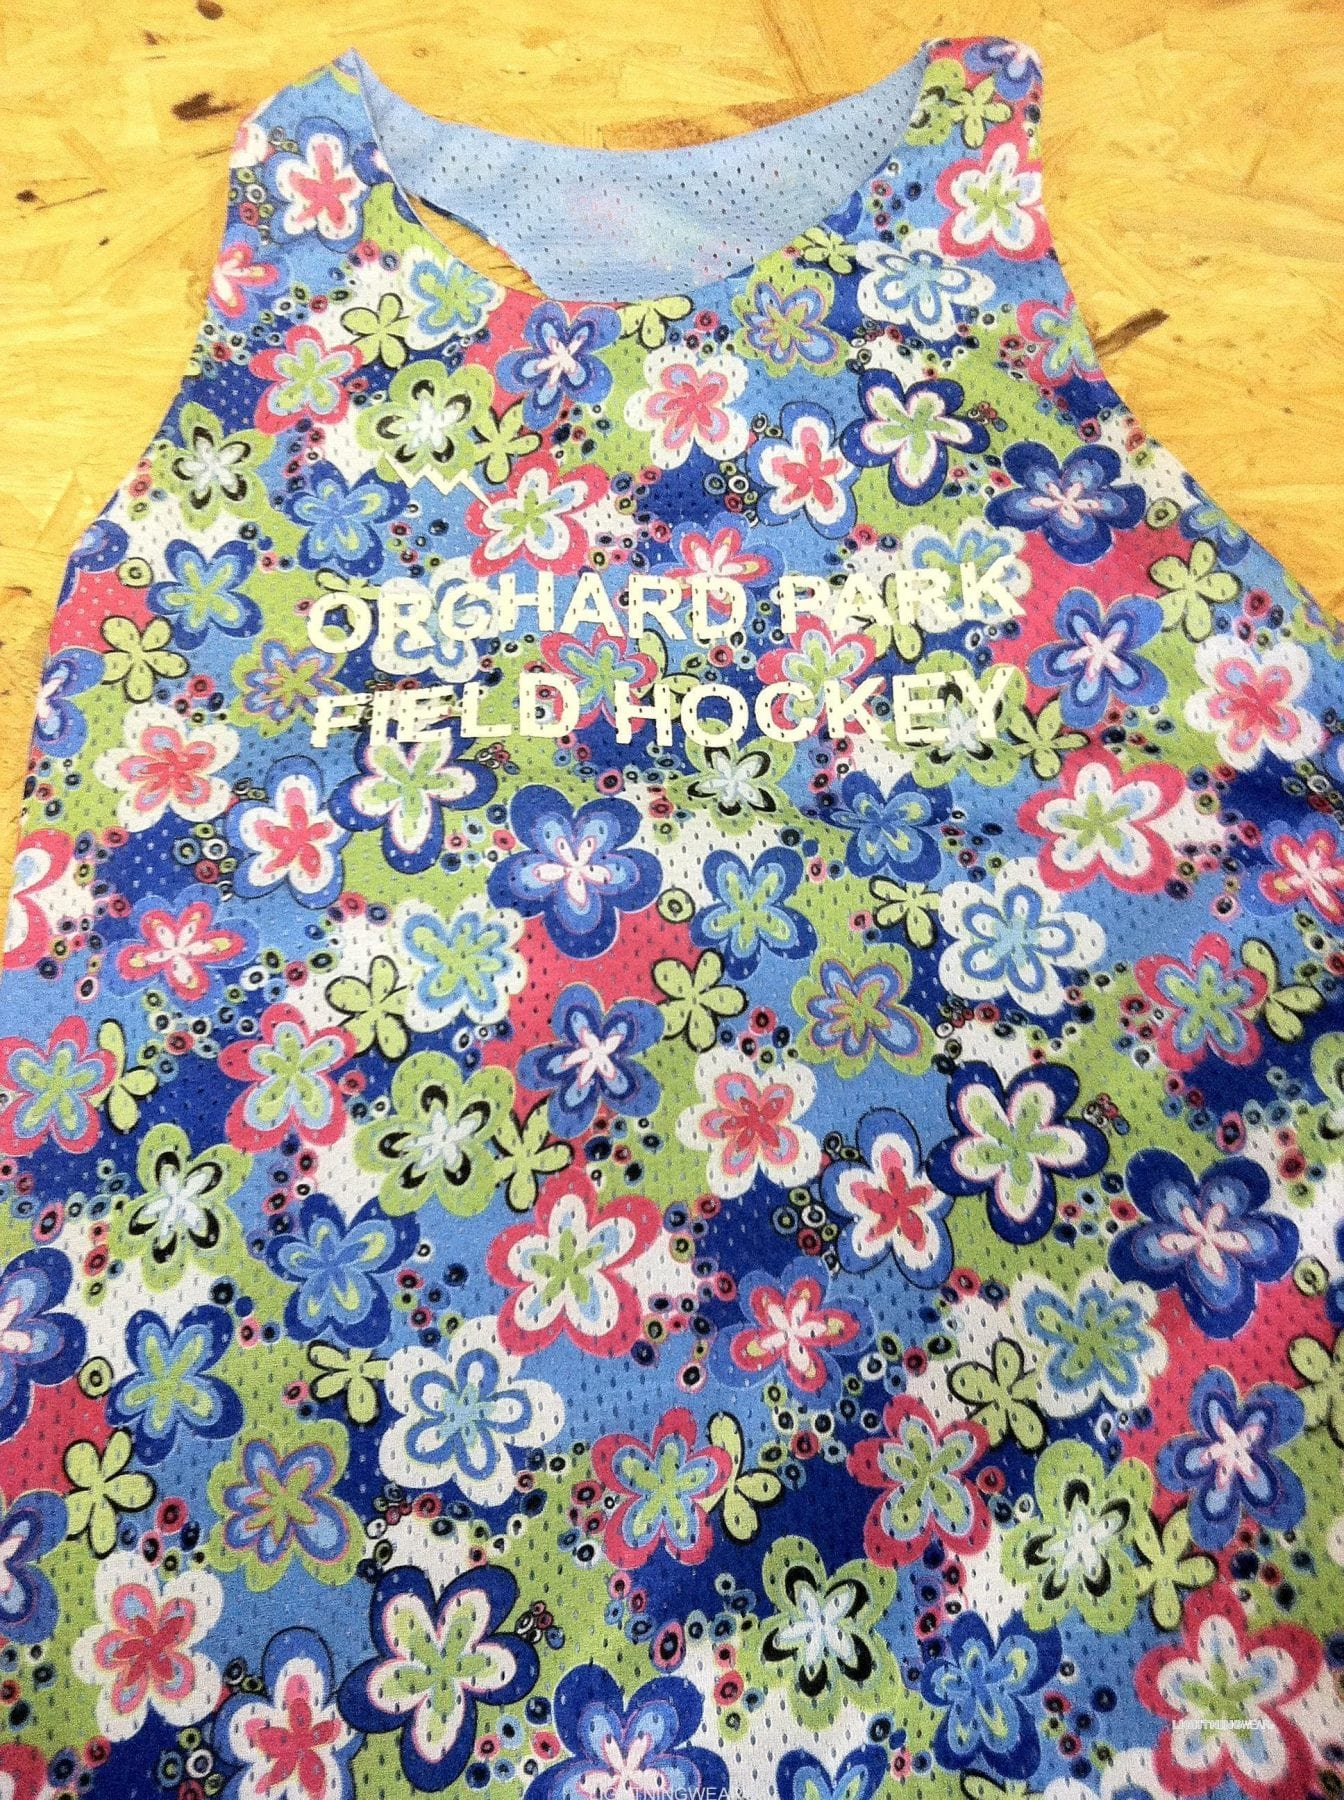 orchard park field hockey